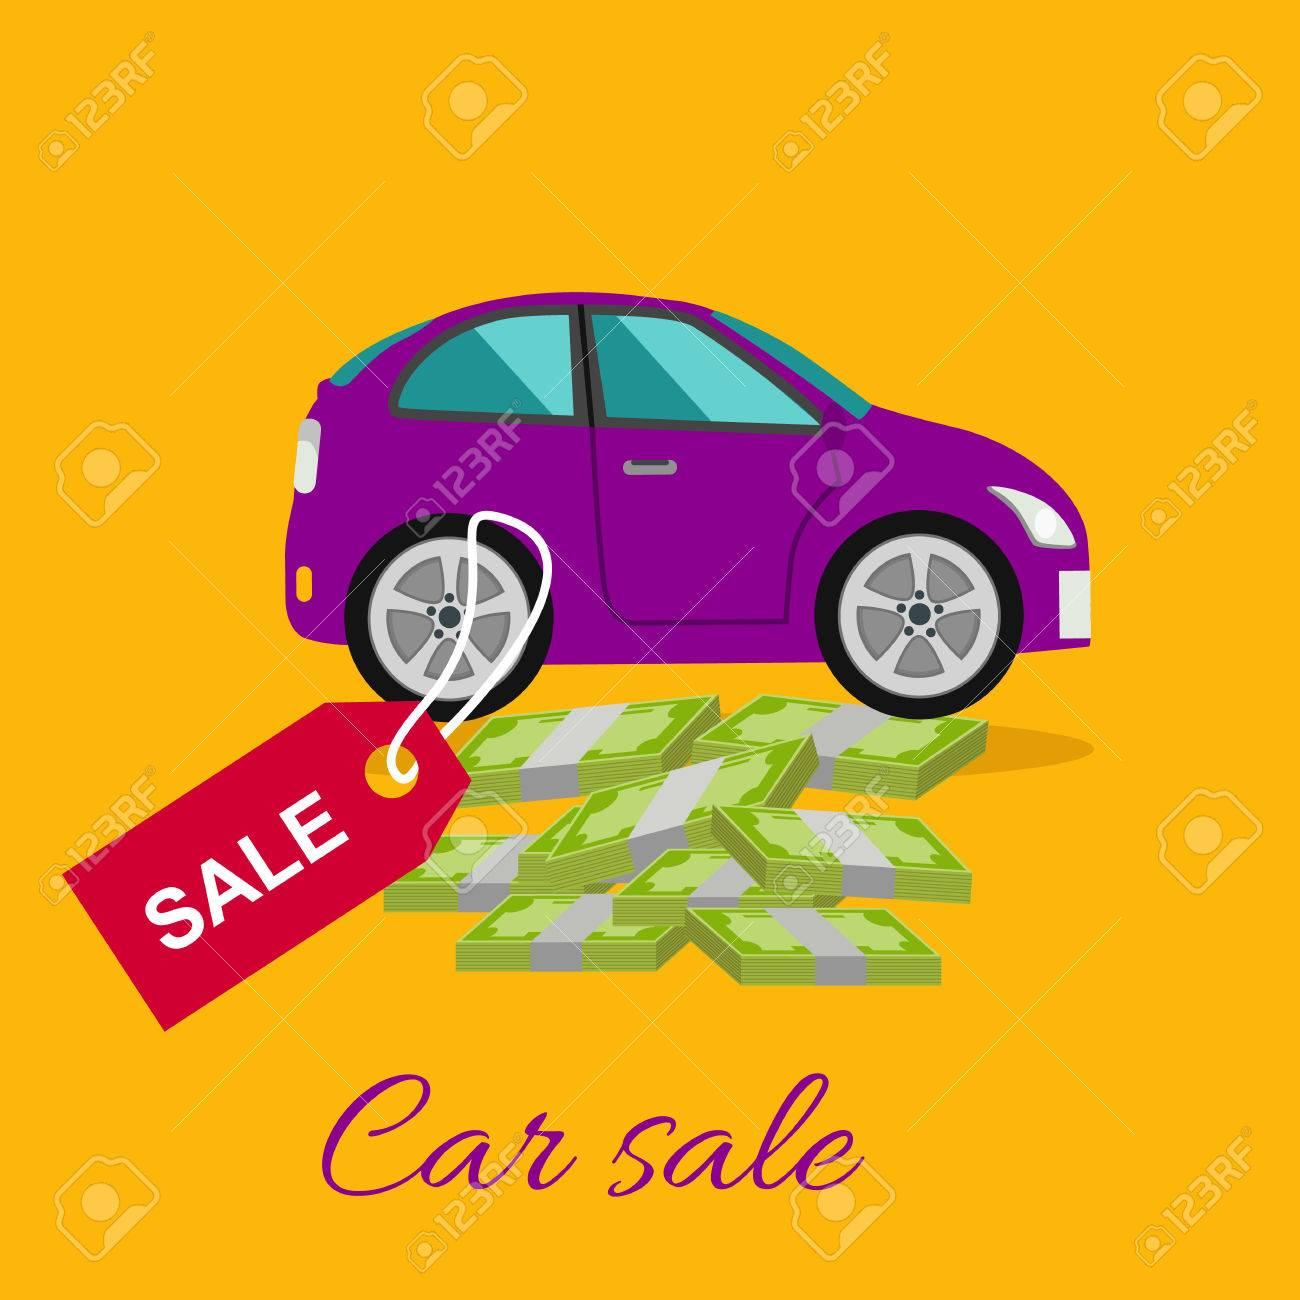 Car Sale Design Template With Modern Car And Tag. Concept In ...